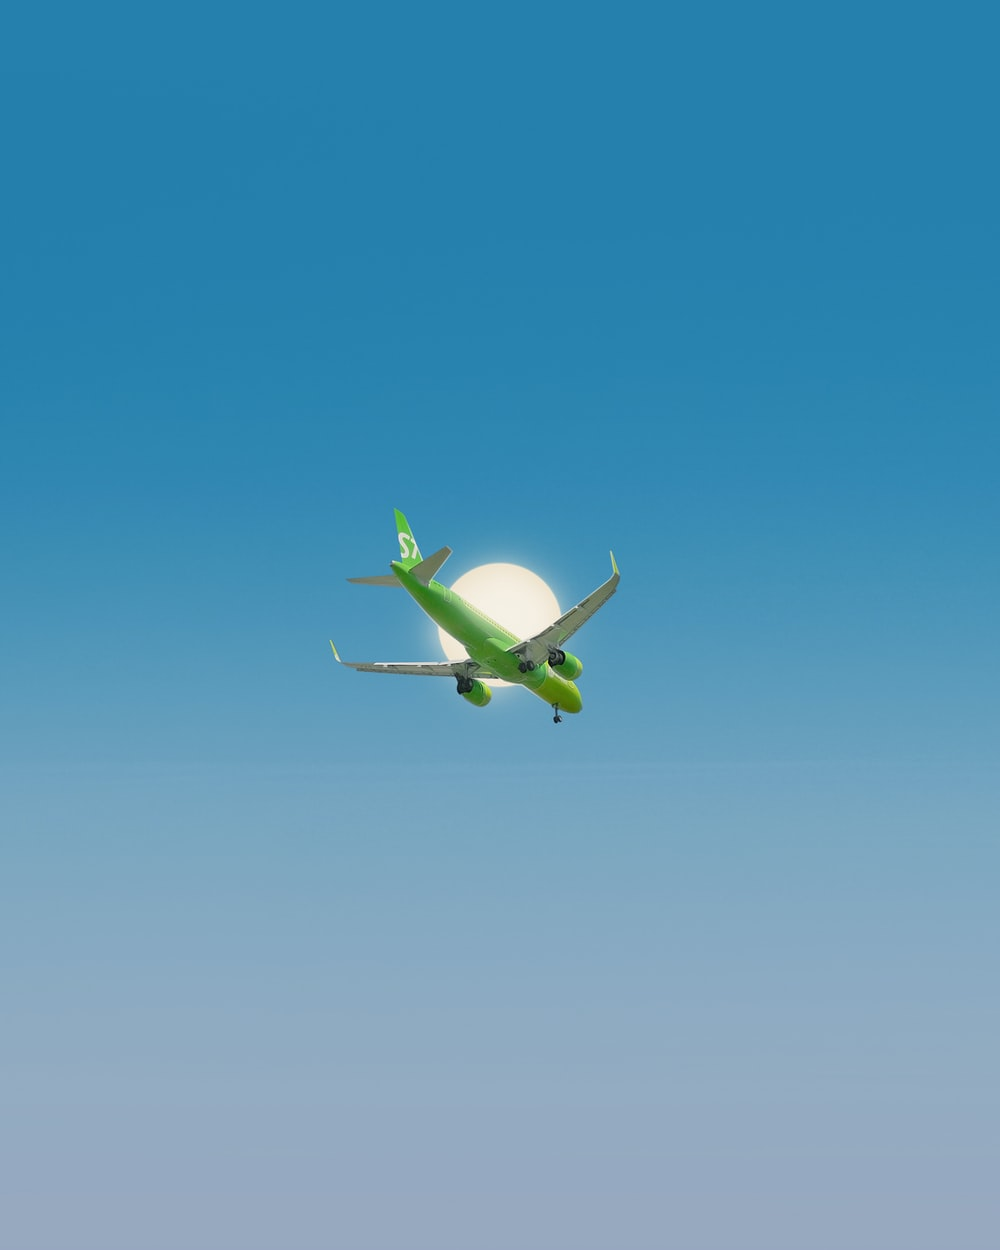 white and green airplane flying under blue sky during daytime